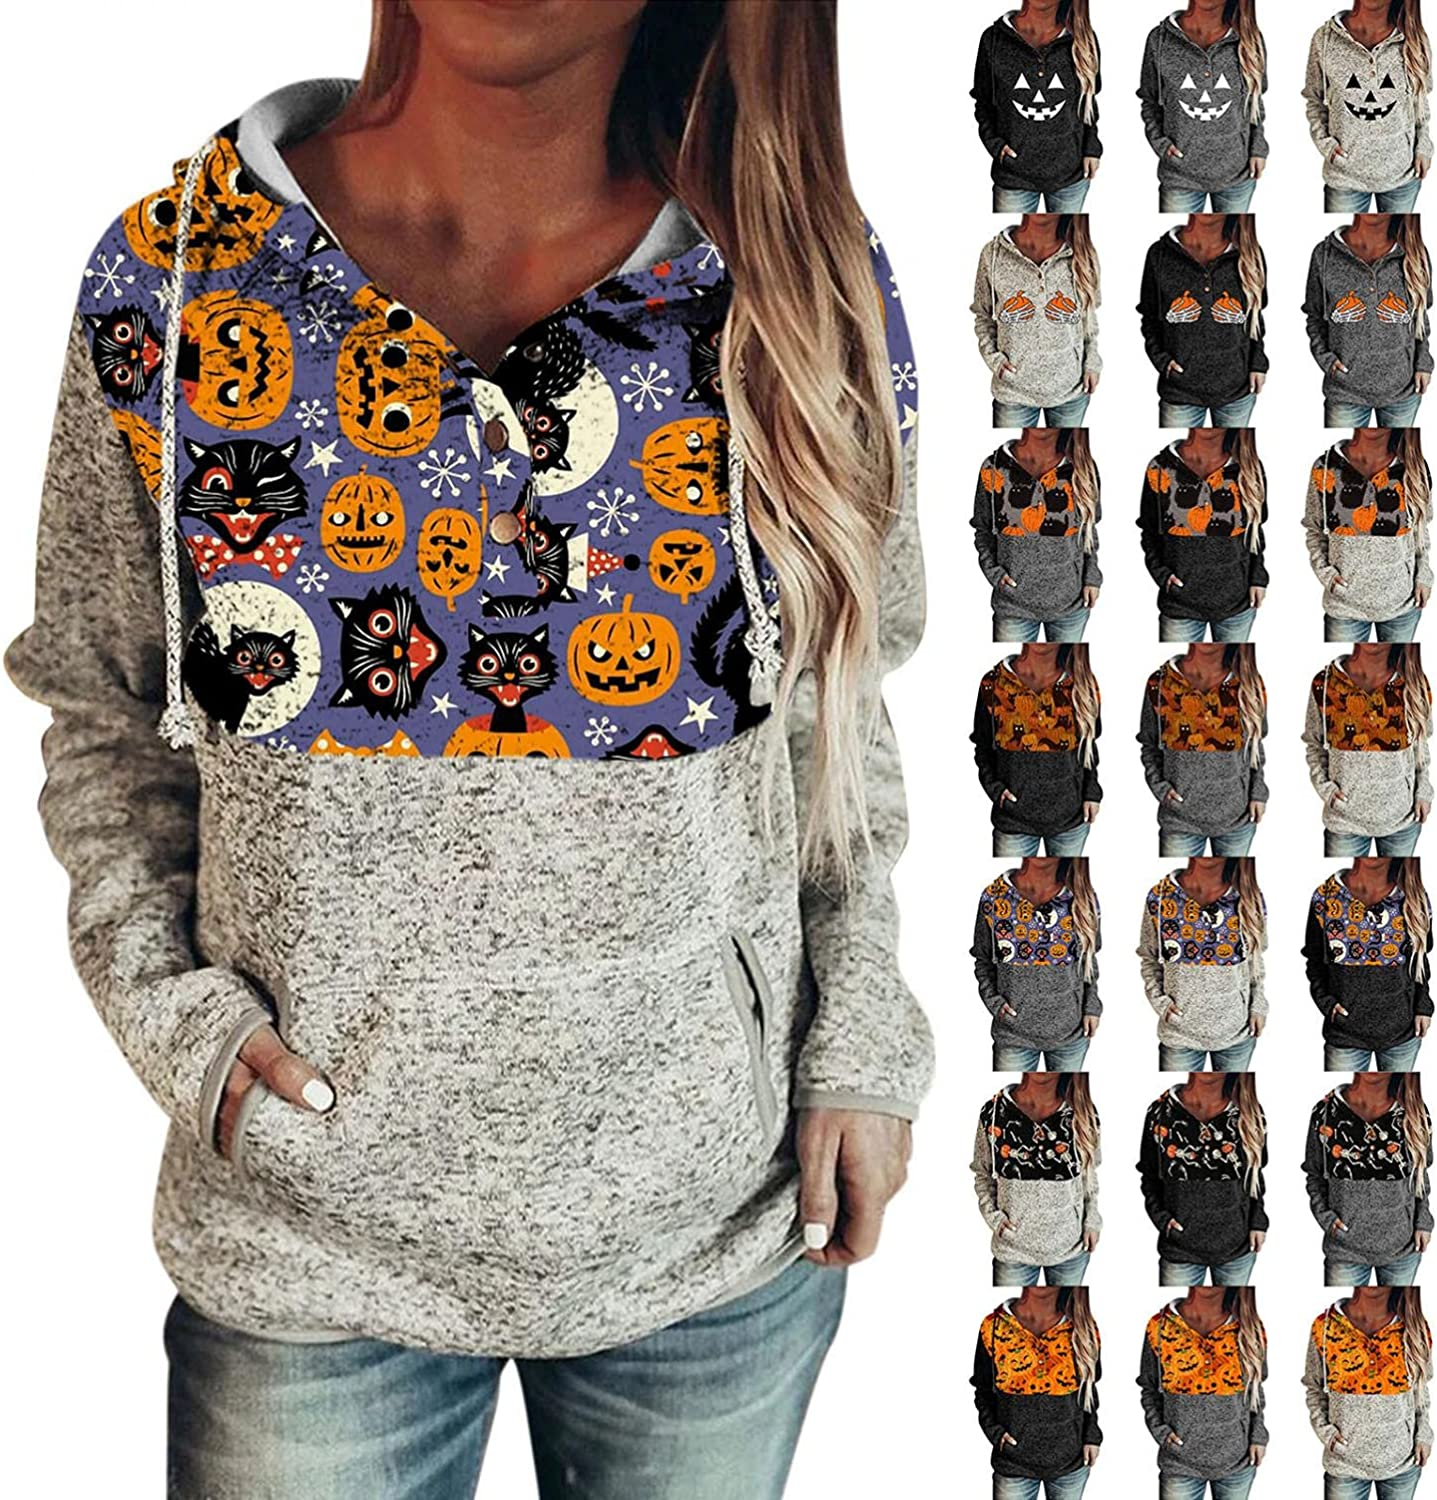 Fudule Halloween Sweatshirts for Women Pumpkin Face Graphic Hoodies with Pocket Long Sleeve Shirts Button Down Blouses